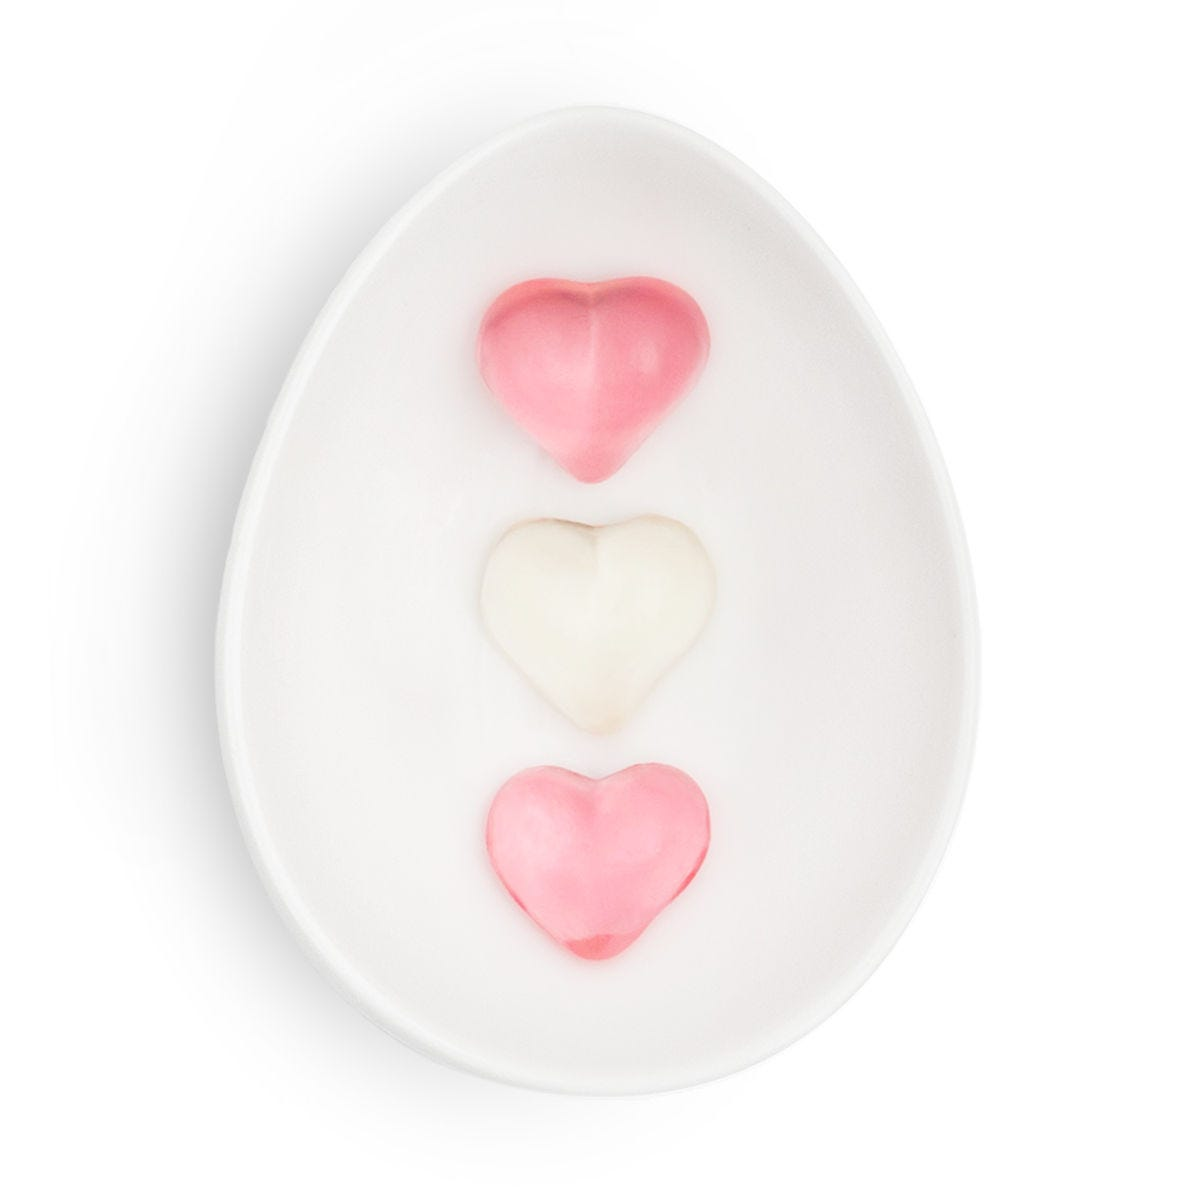 Sugar-Free Champagne Hearts - Small Candy Cube